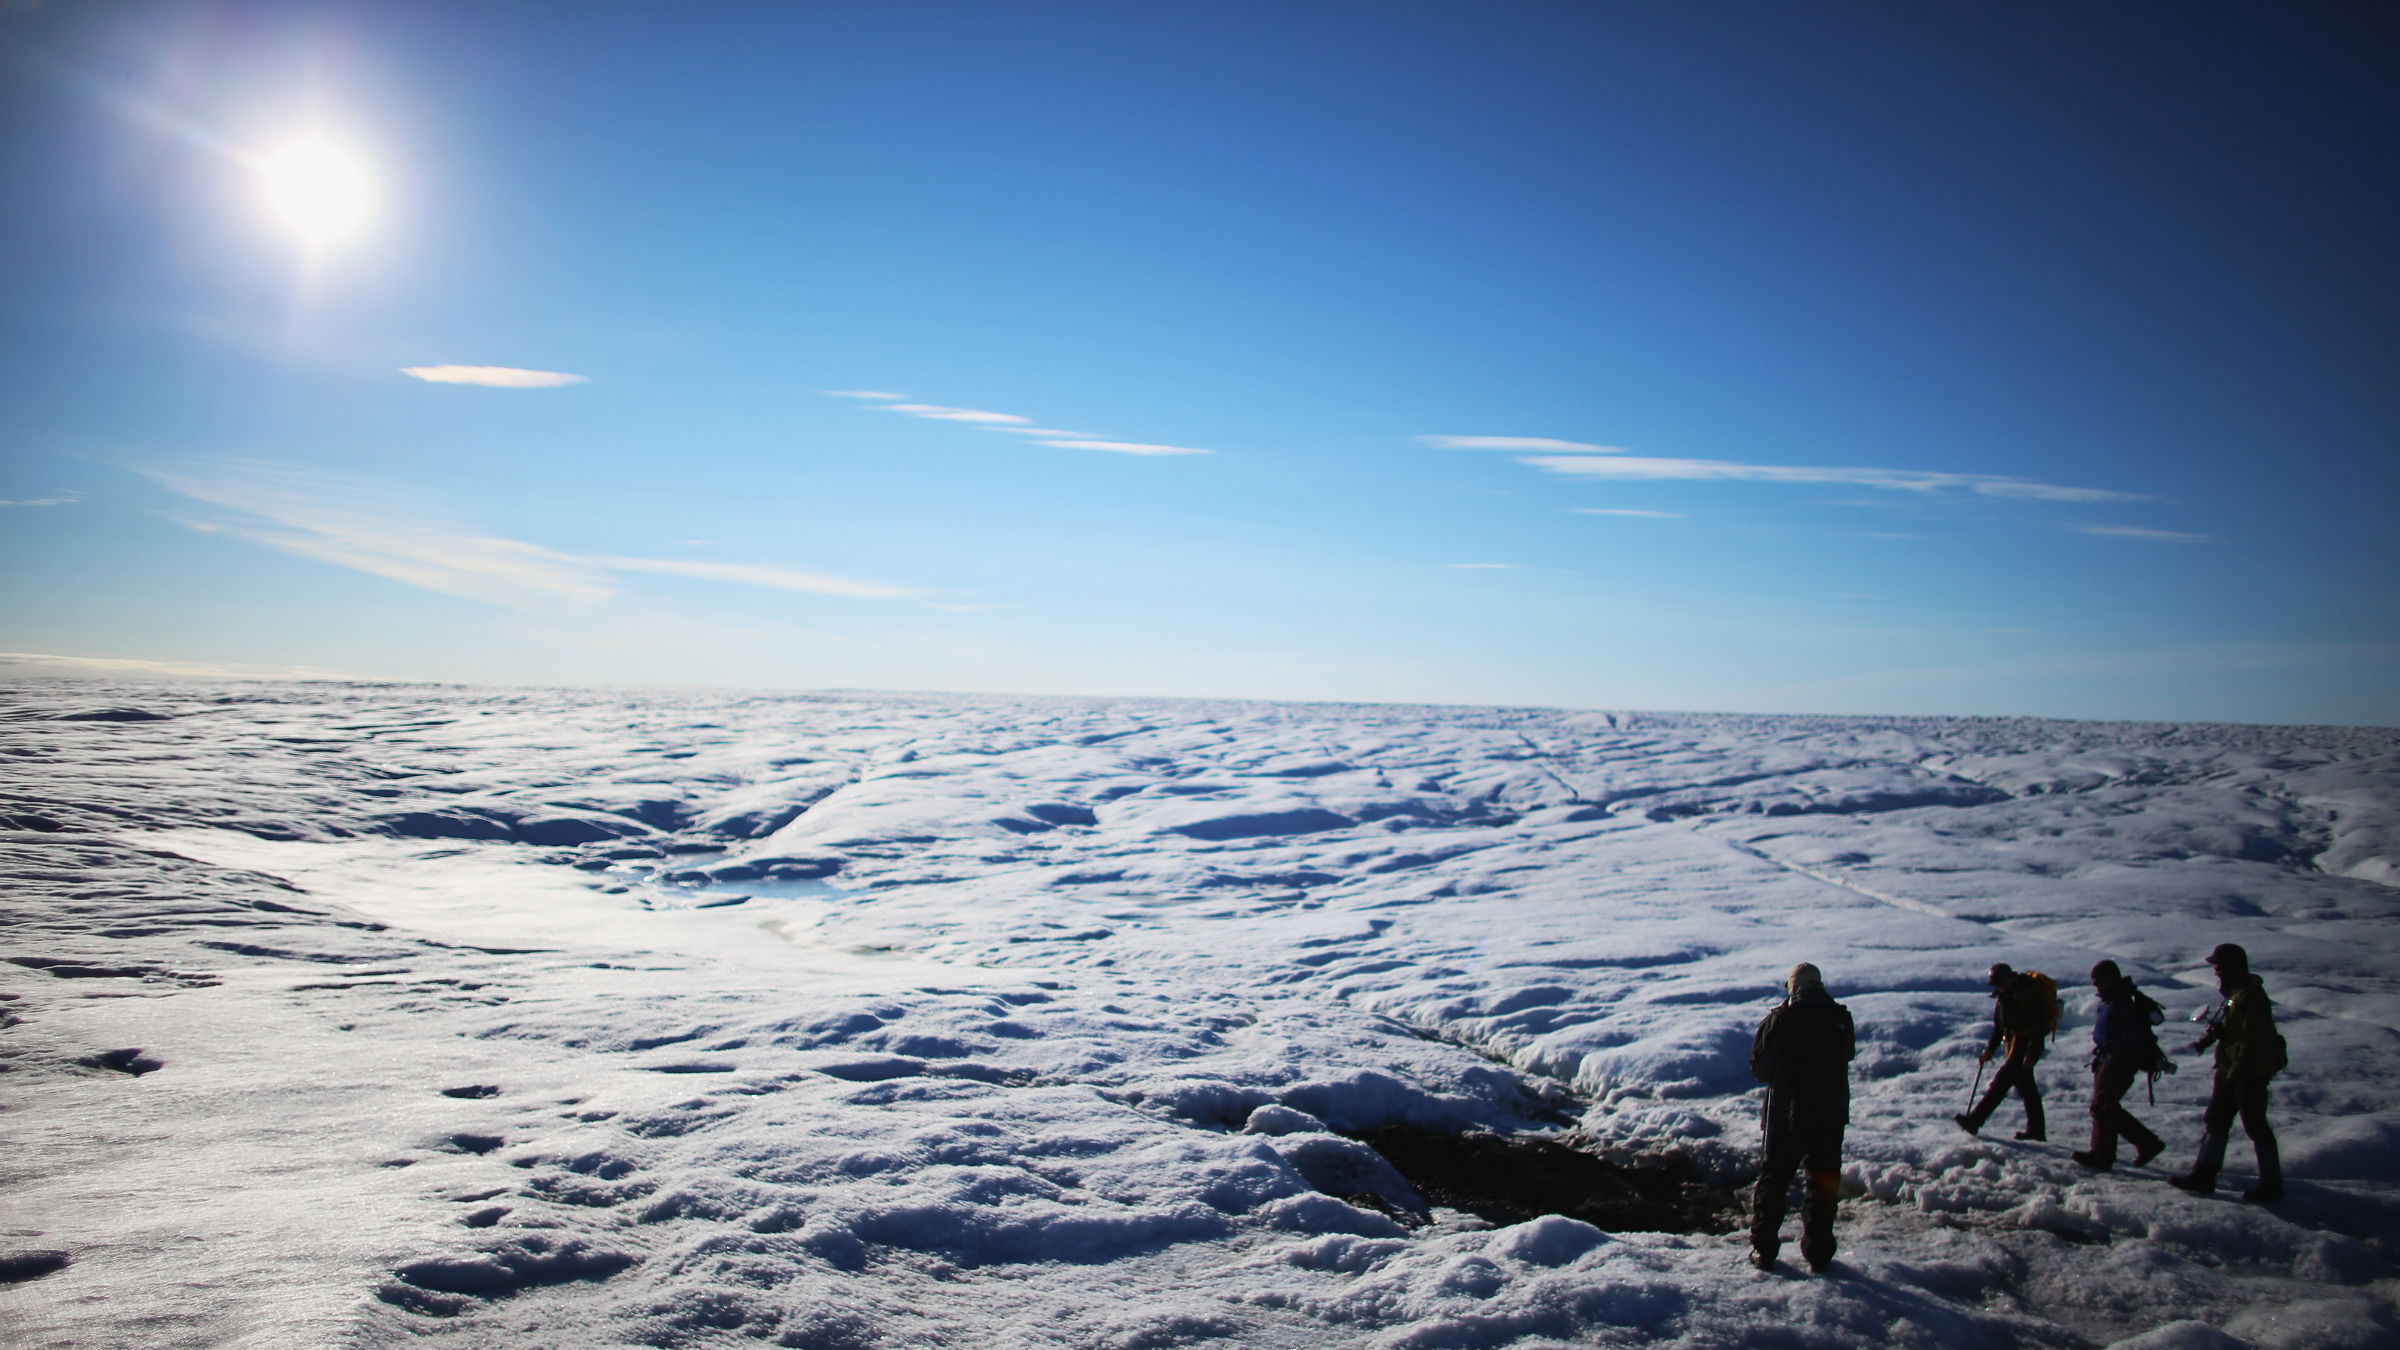 Scientists from the Woods Hole Oceanographic Institution and University of Washington walk across the glacier on July 15, 2013 on the Glacial Ice Sheet, Greenland.